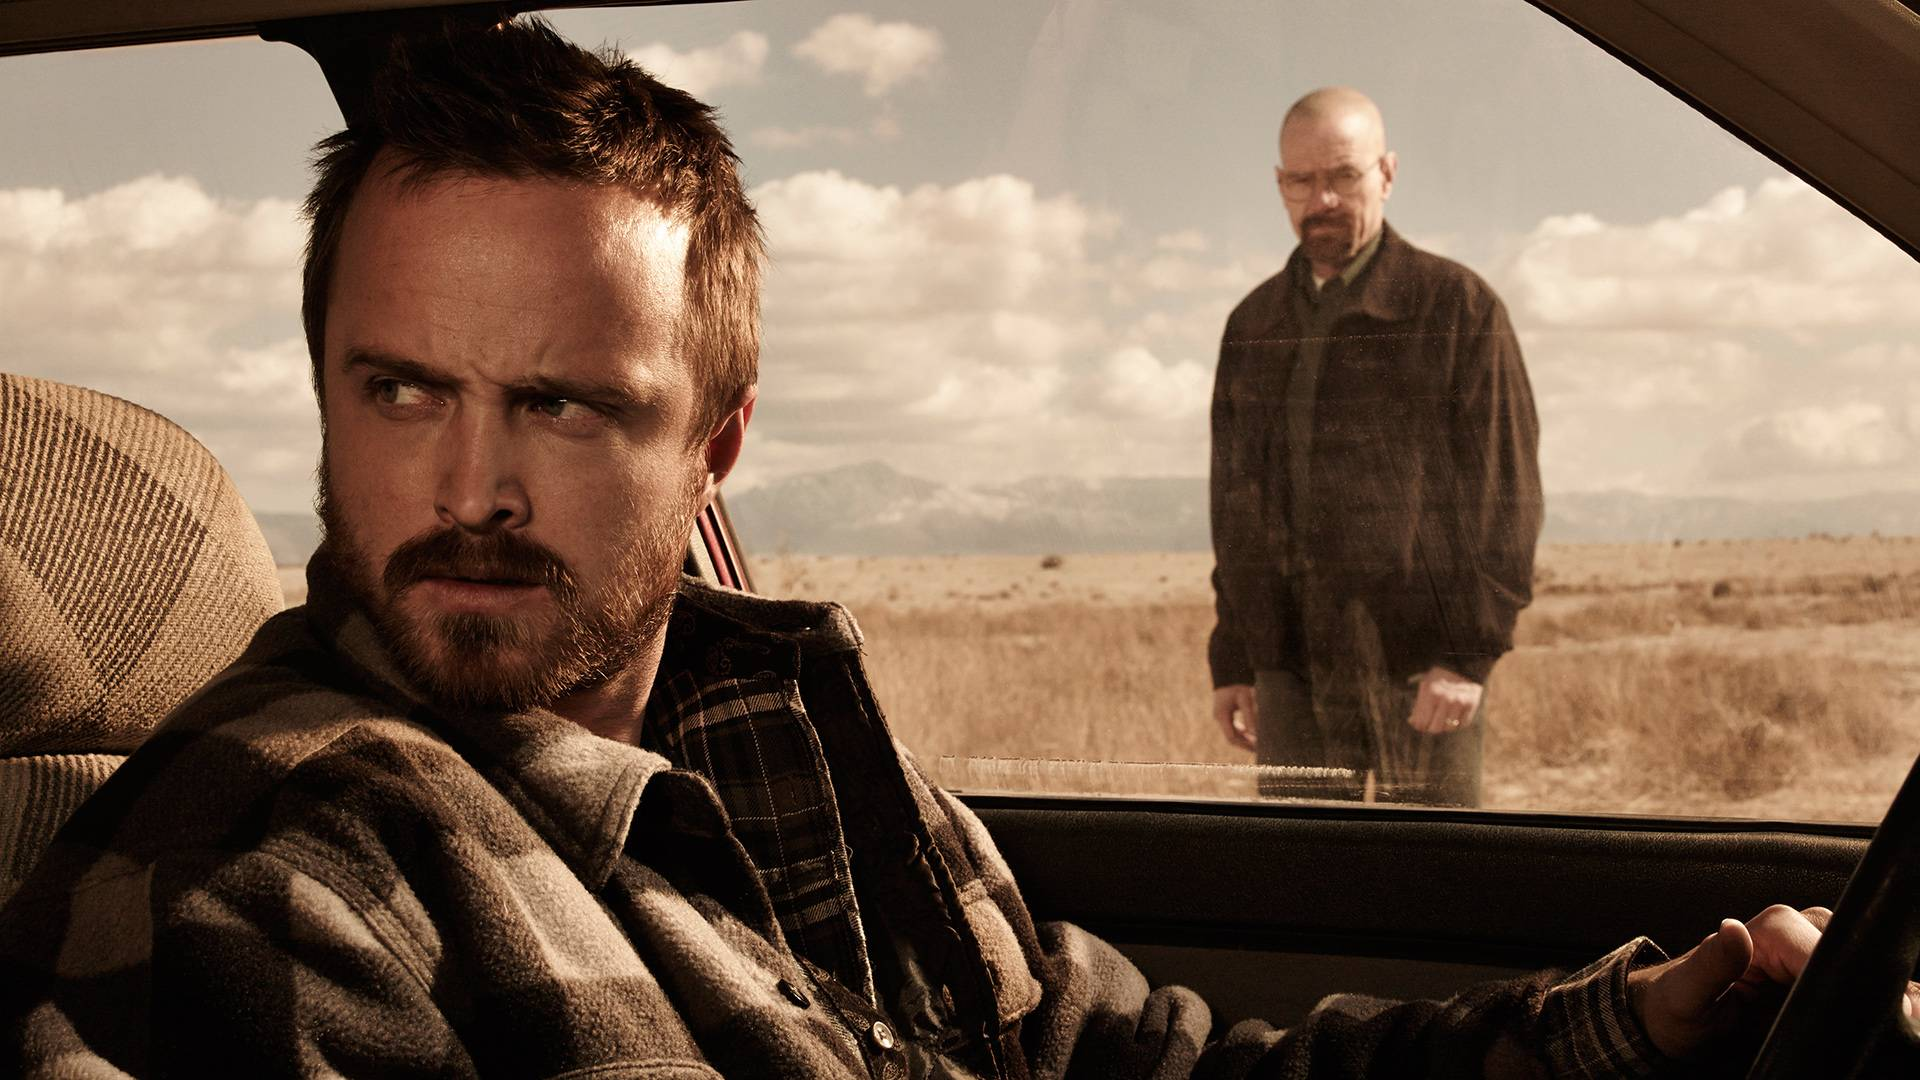 Breaking bad hd wallpaper | background image | 1920x1080 | id.